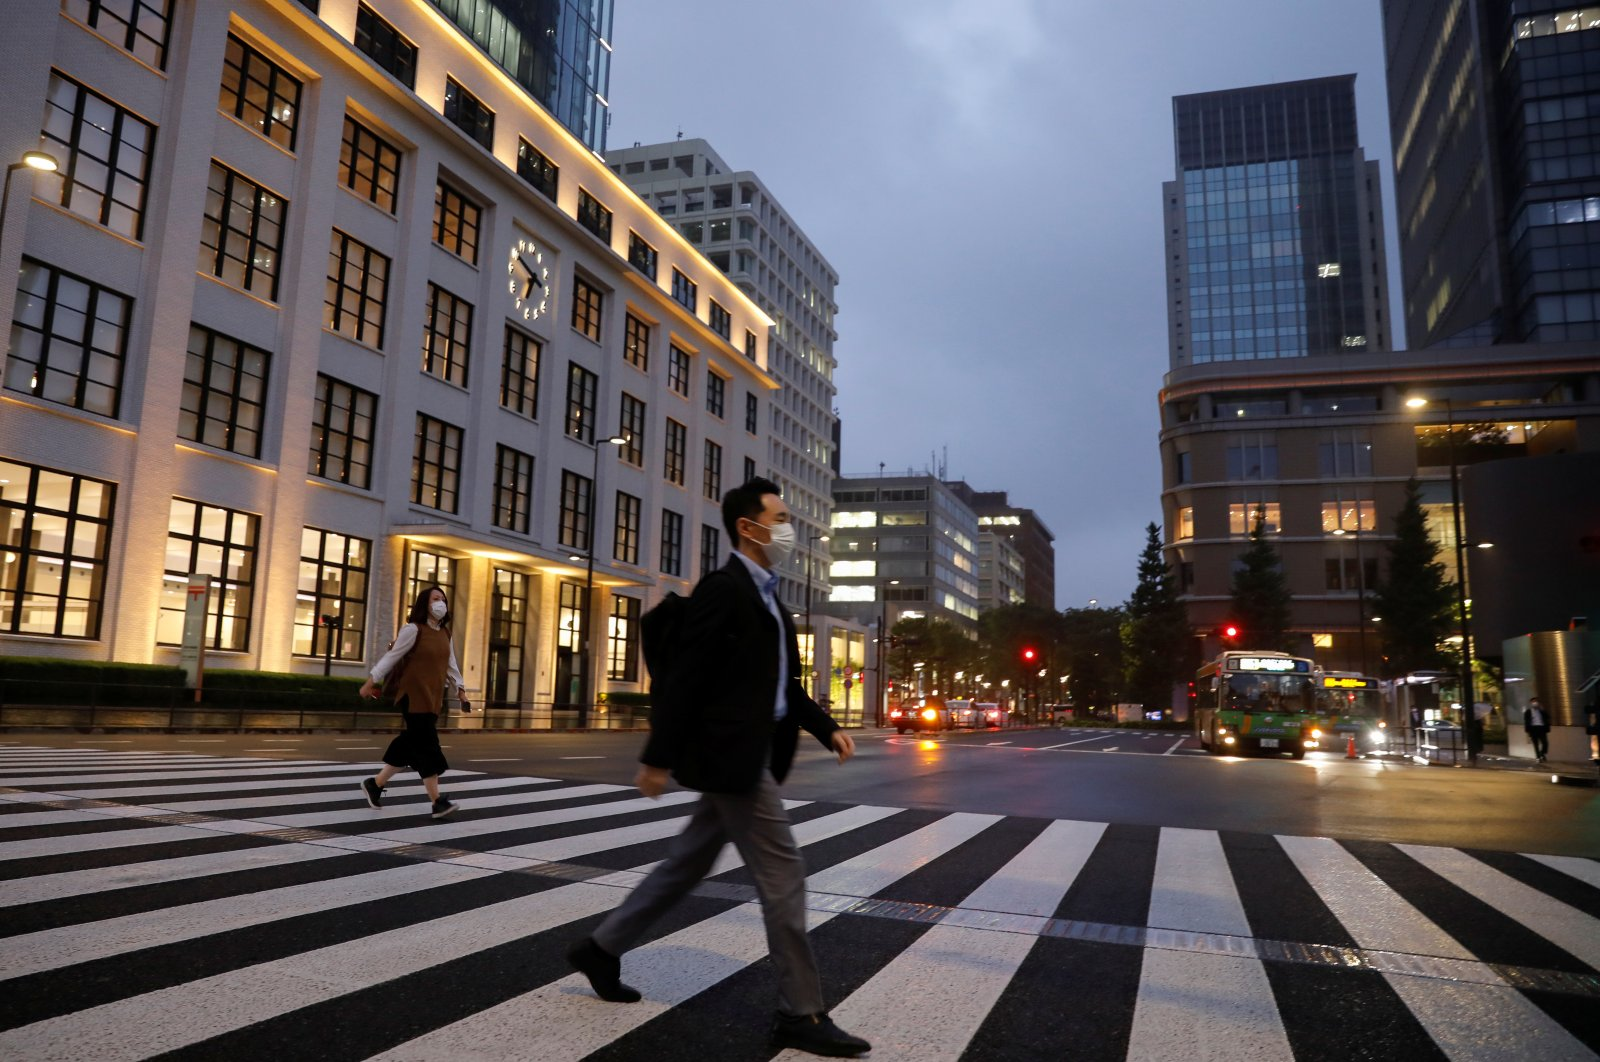 A pedestrian wearing a protective face mask crosses a street, amid the coronavirus outbreak, in the business district in Tokyo, Japan, May 21, 2020. (Reuters Photo)